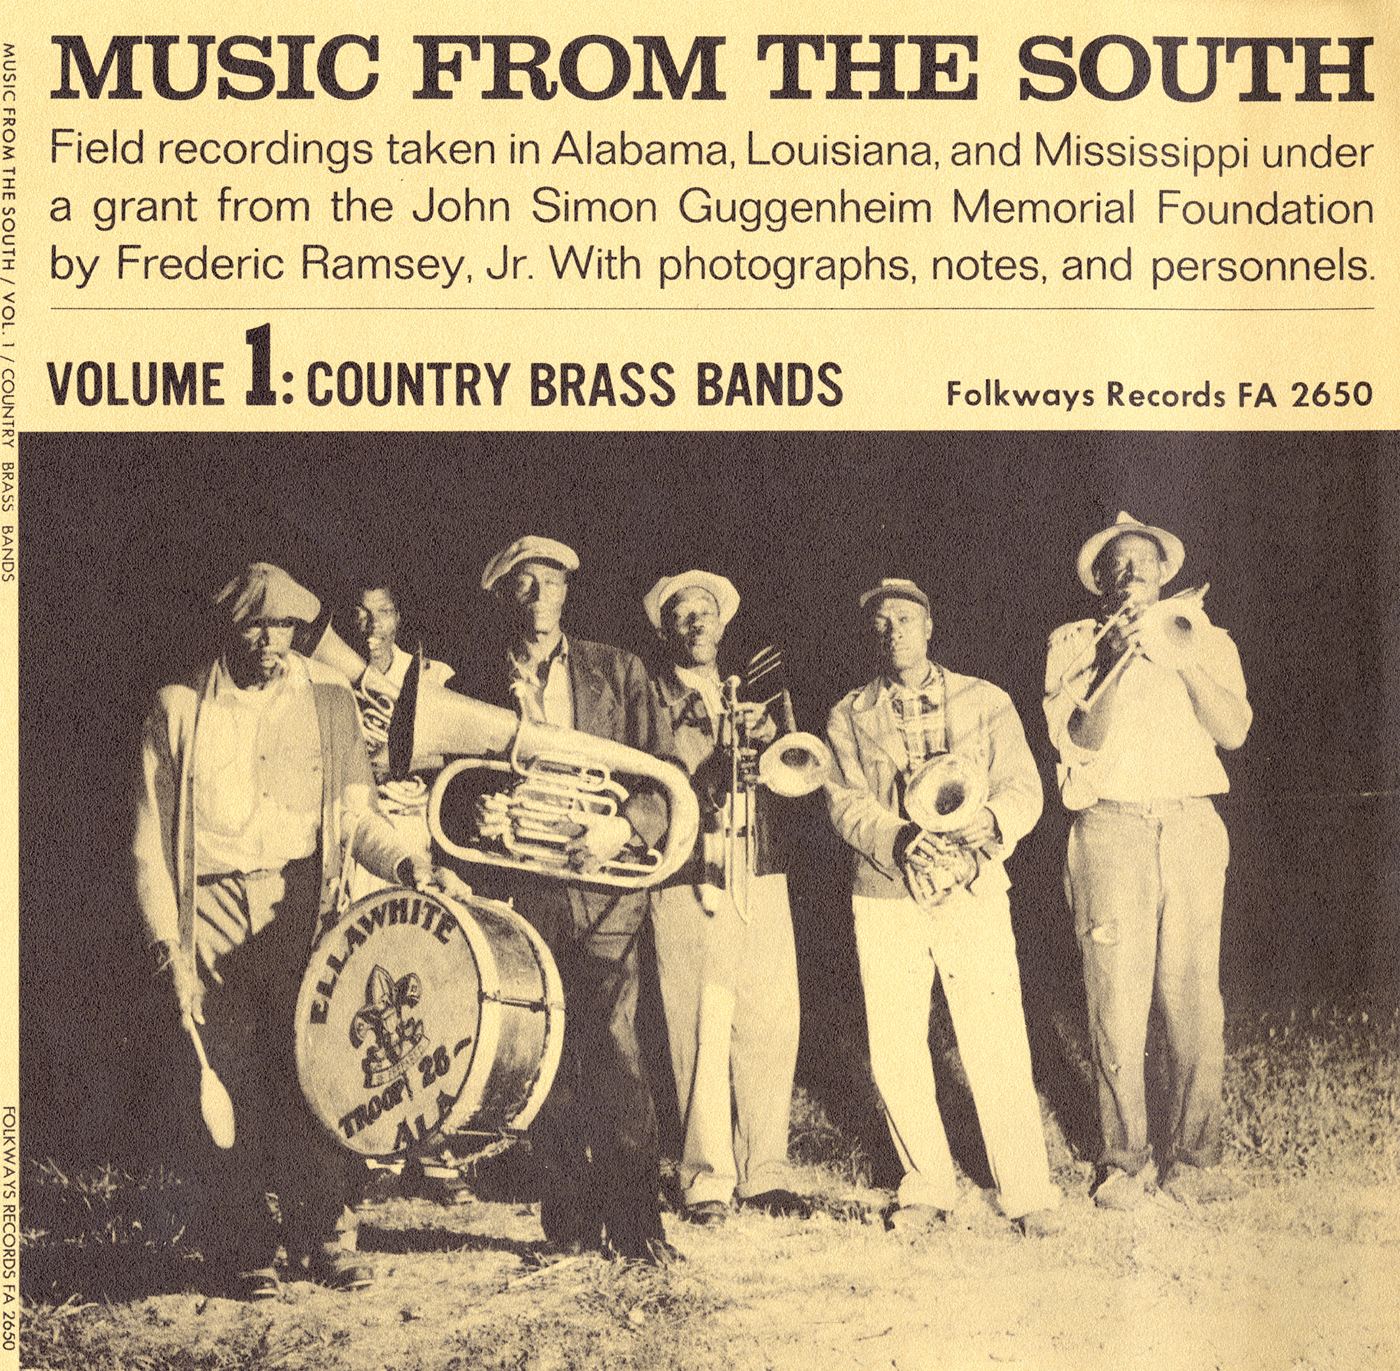 South Africa Man Bands: Music From The South, Vol. 1: Country Brass Bands